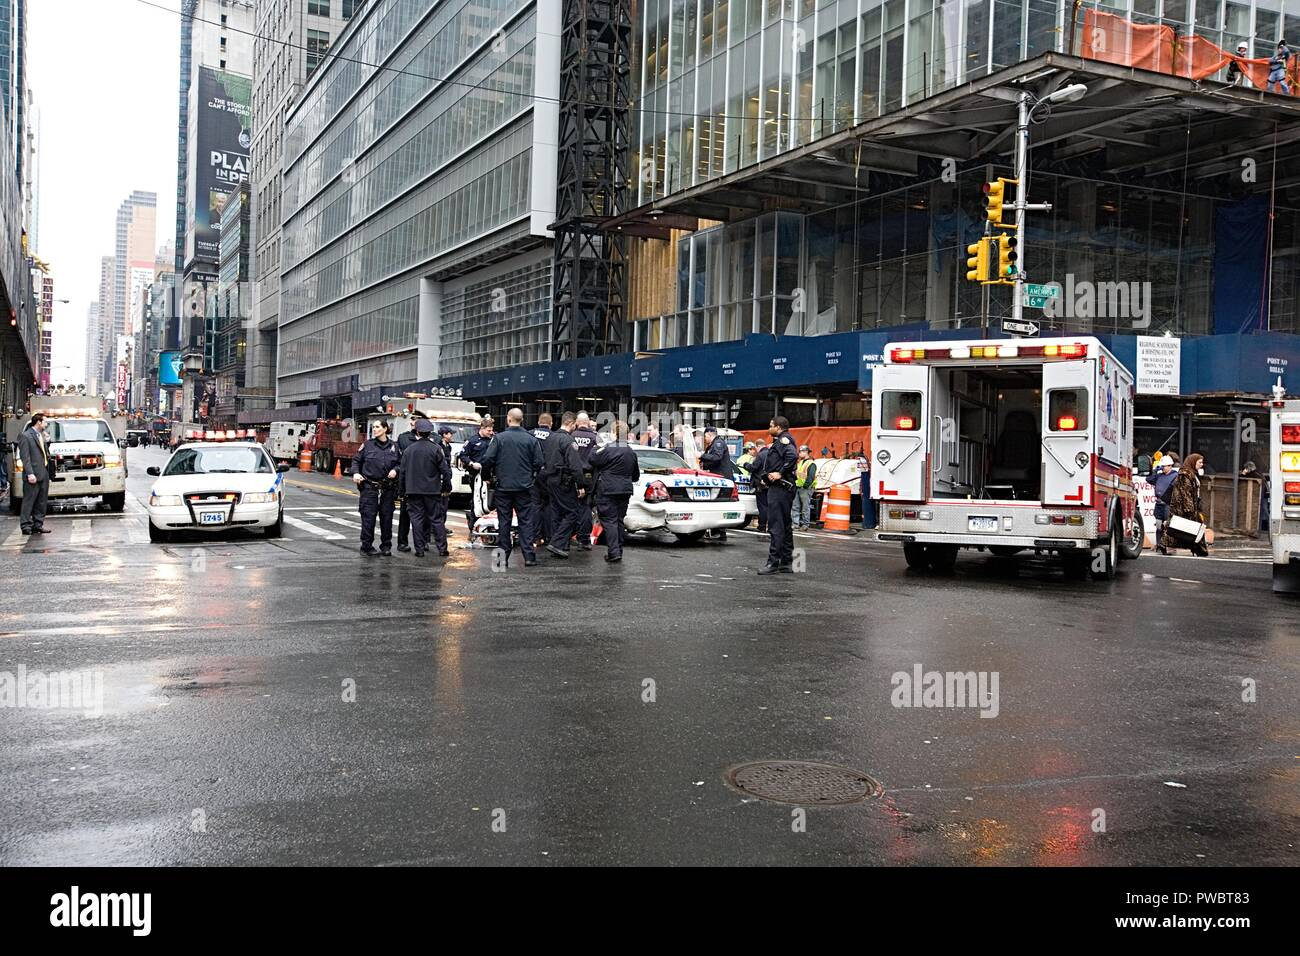 Car accident in New York city - Stock Image